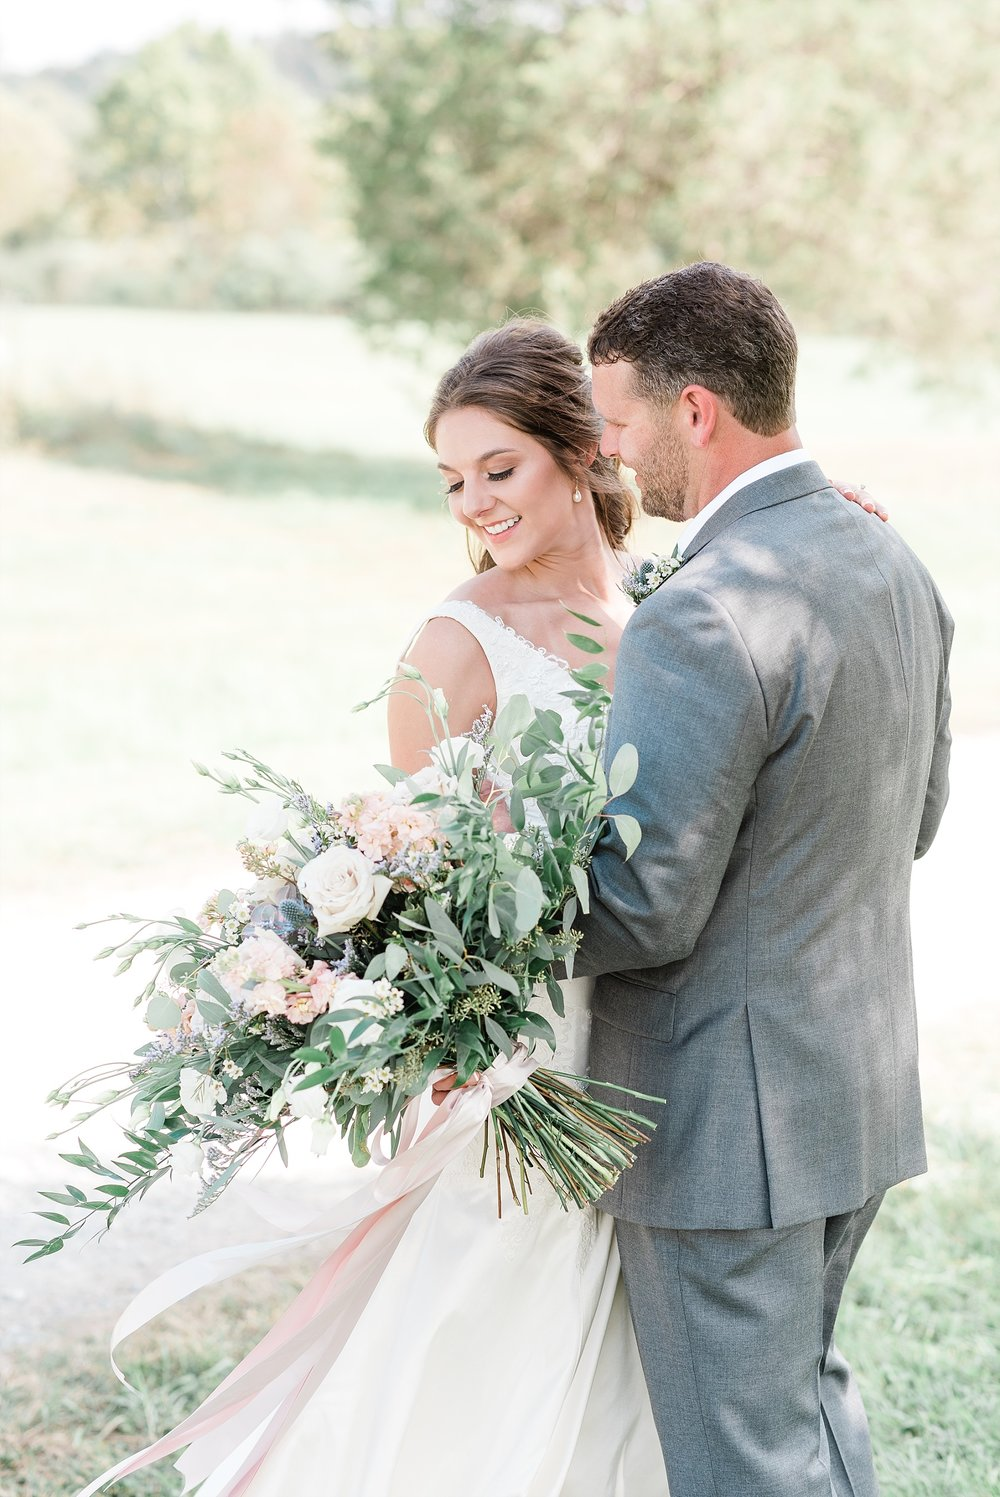 Fine Art Sunset Themed Wedding in Autumn at Dodson Orchards by Kelsi Kliethermes Photography_0048.jpg